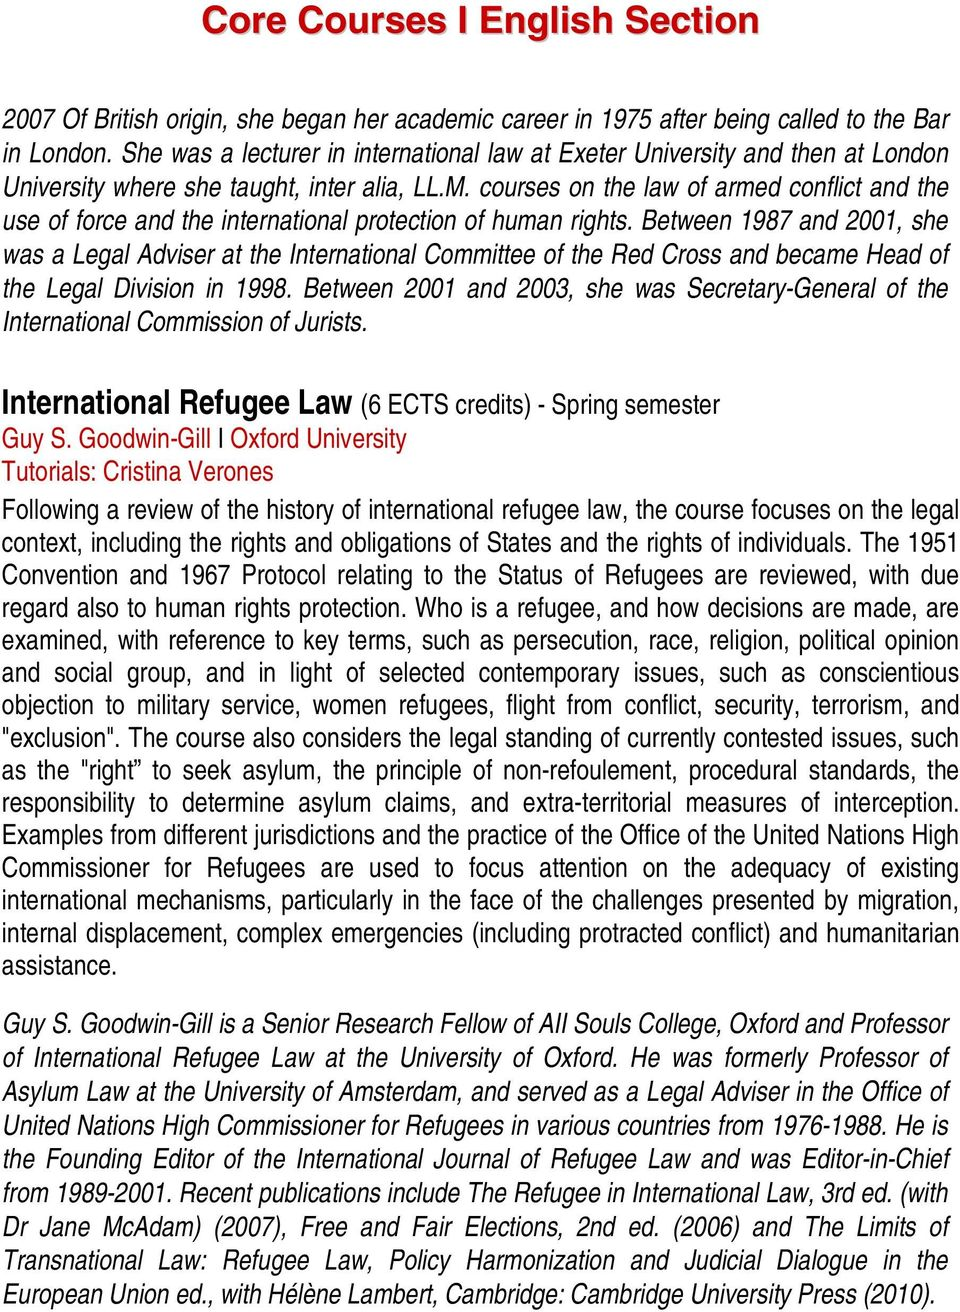 courses on the law of armed conflict and the use of force and the international protection of human rights.